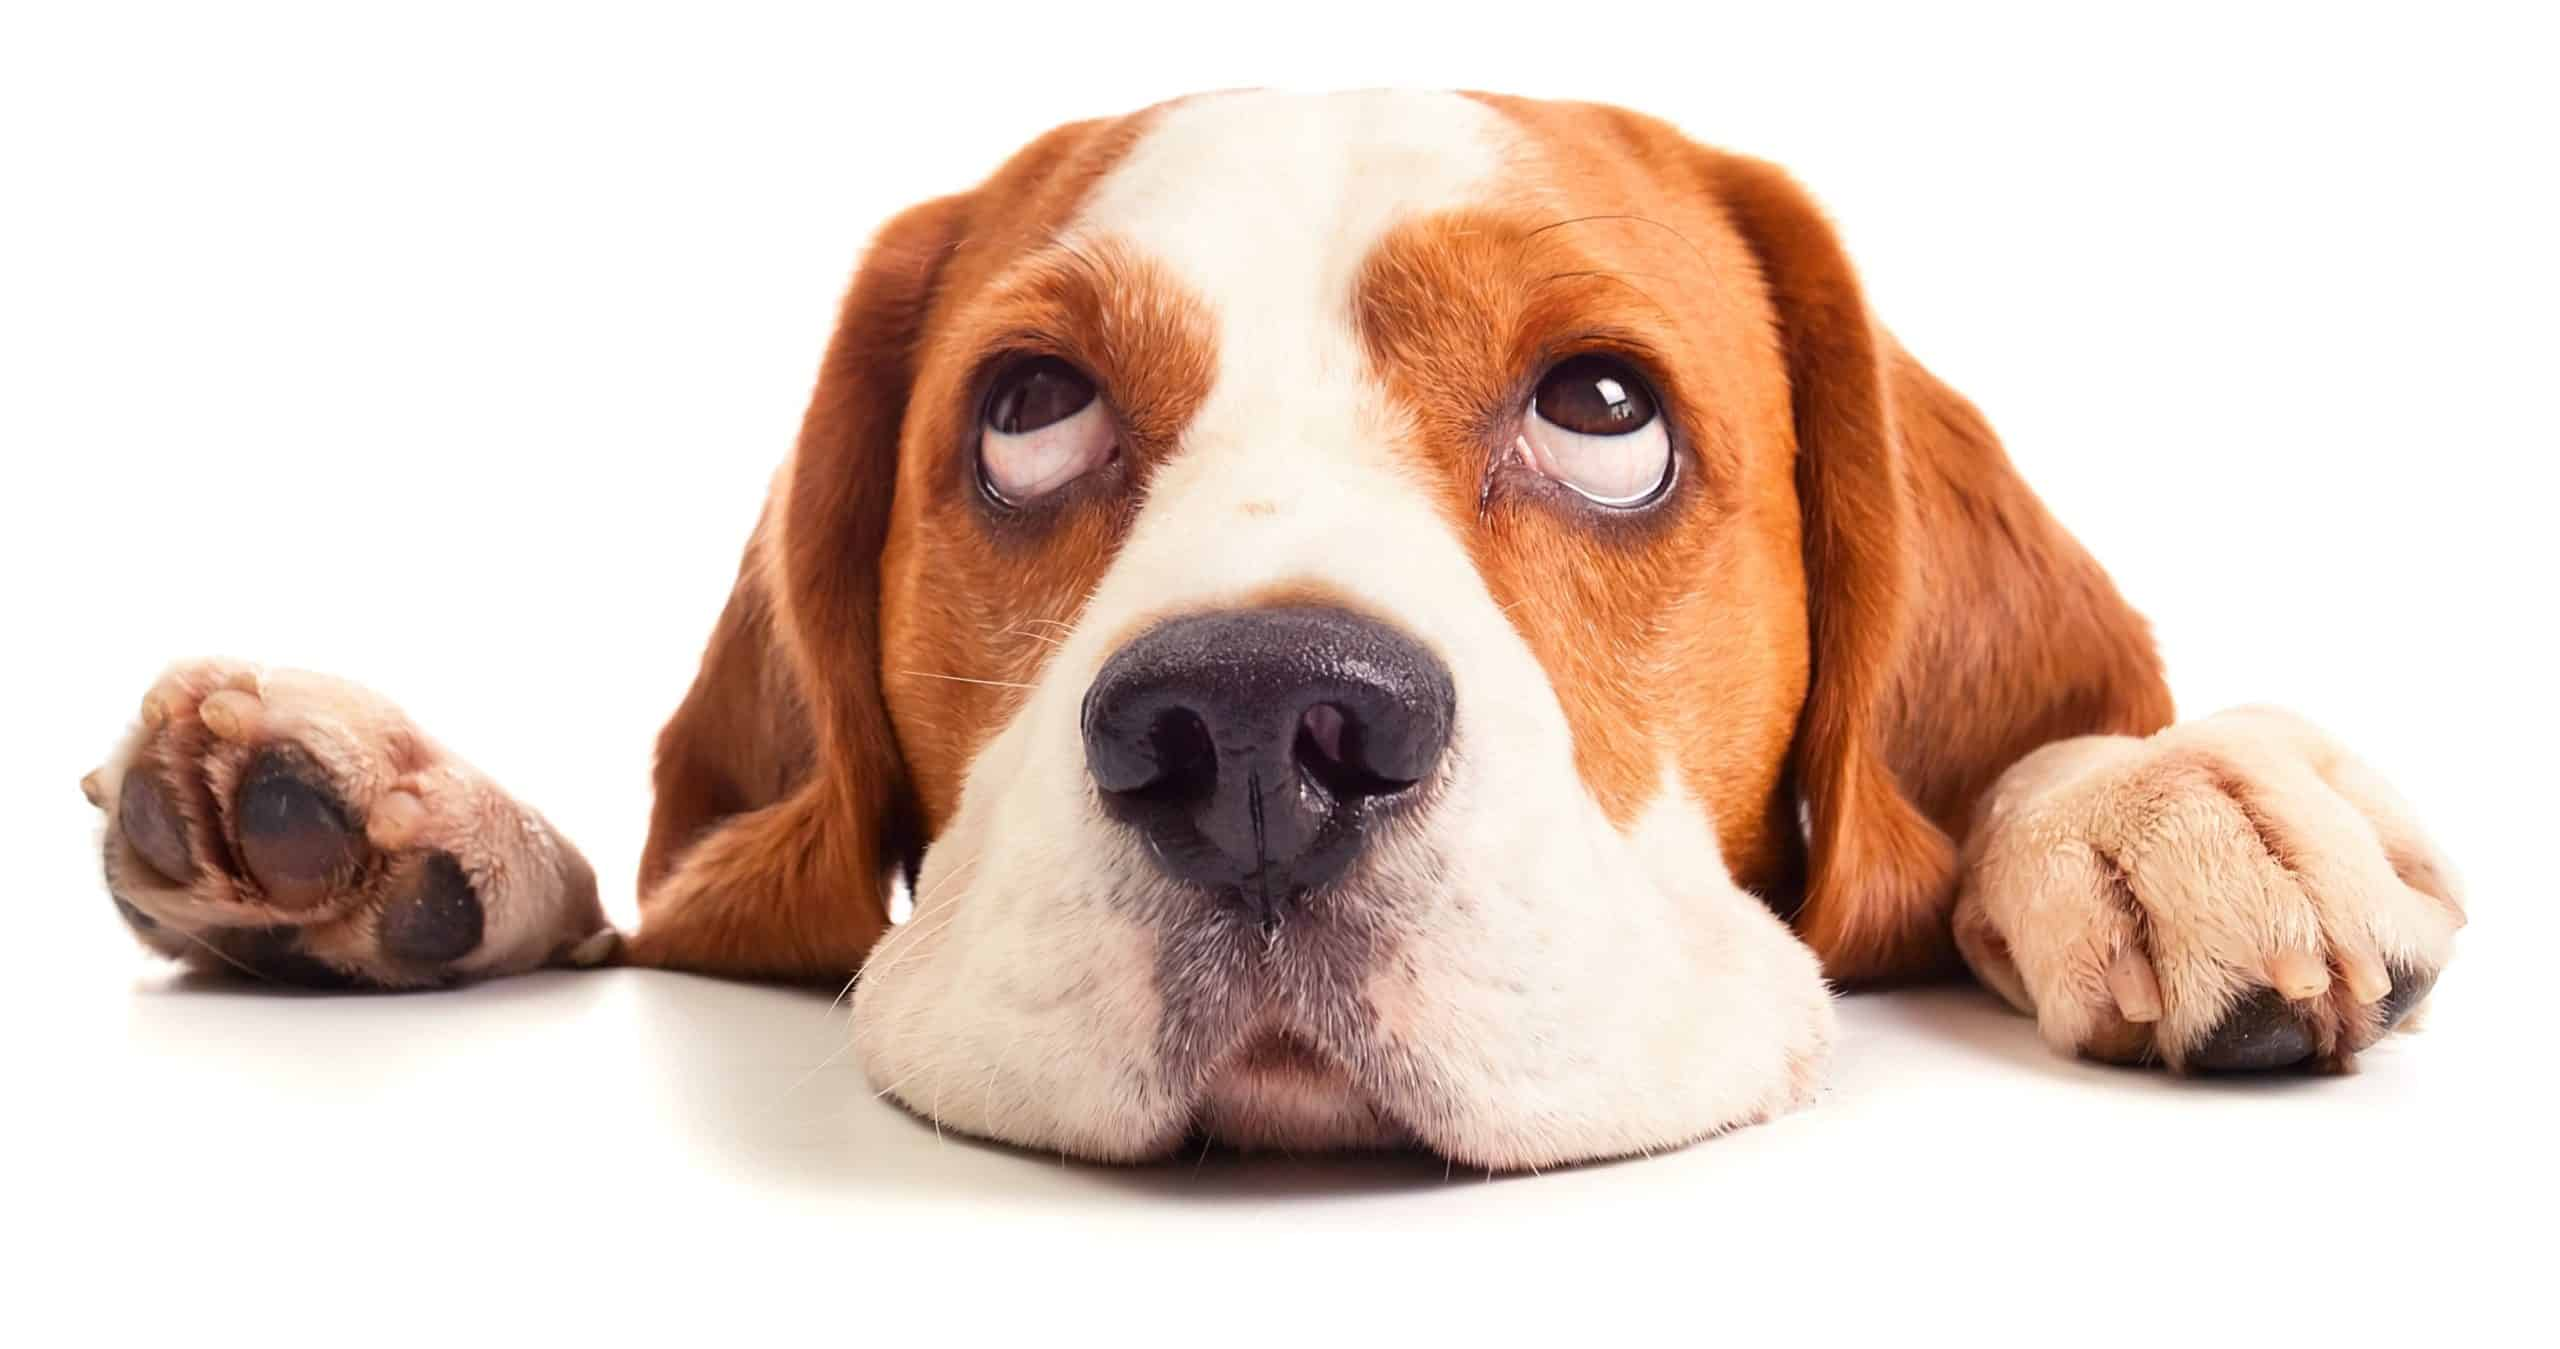 Beagle with big eyes. If you have an epileptic dog, reduce risks at home that could injure your dog during a seizure.